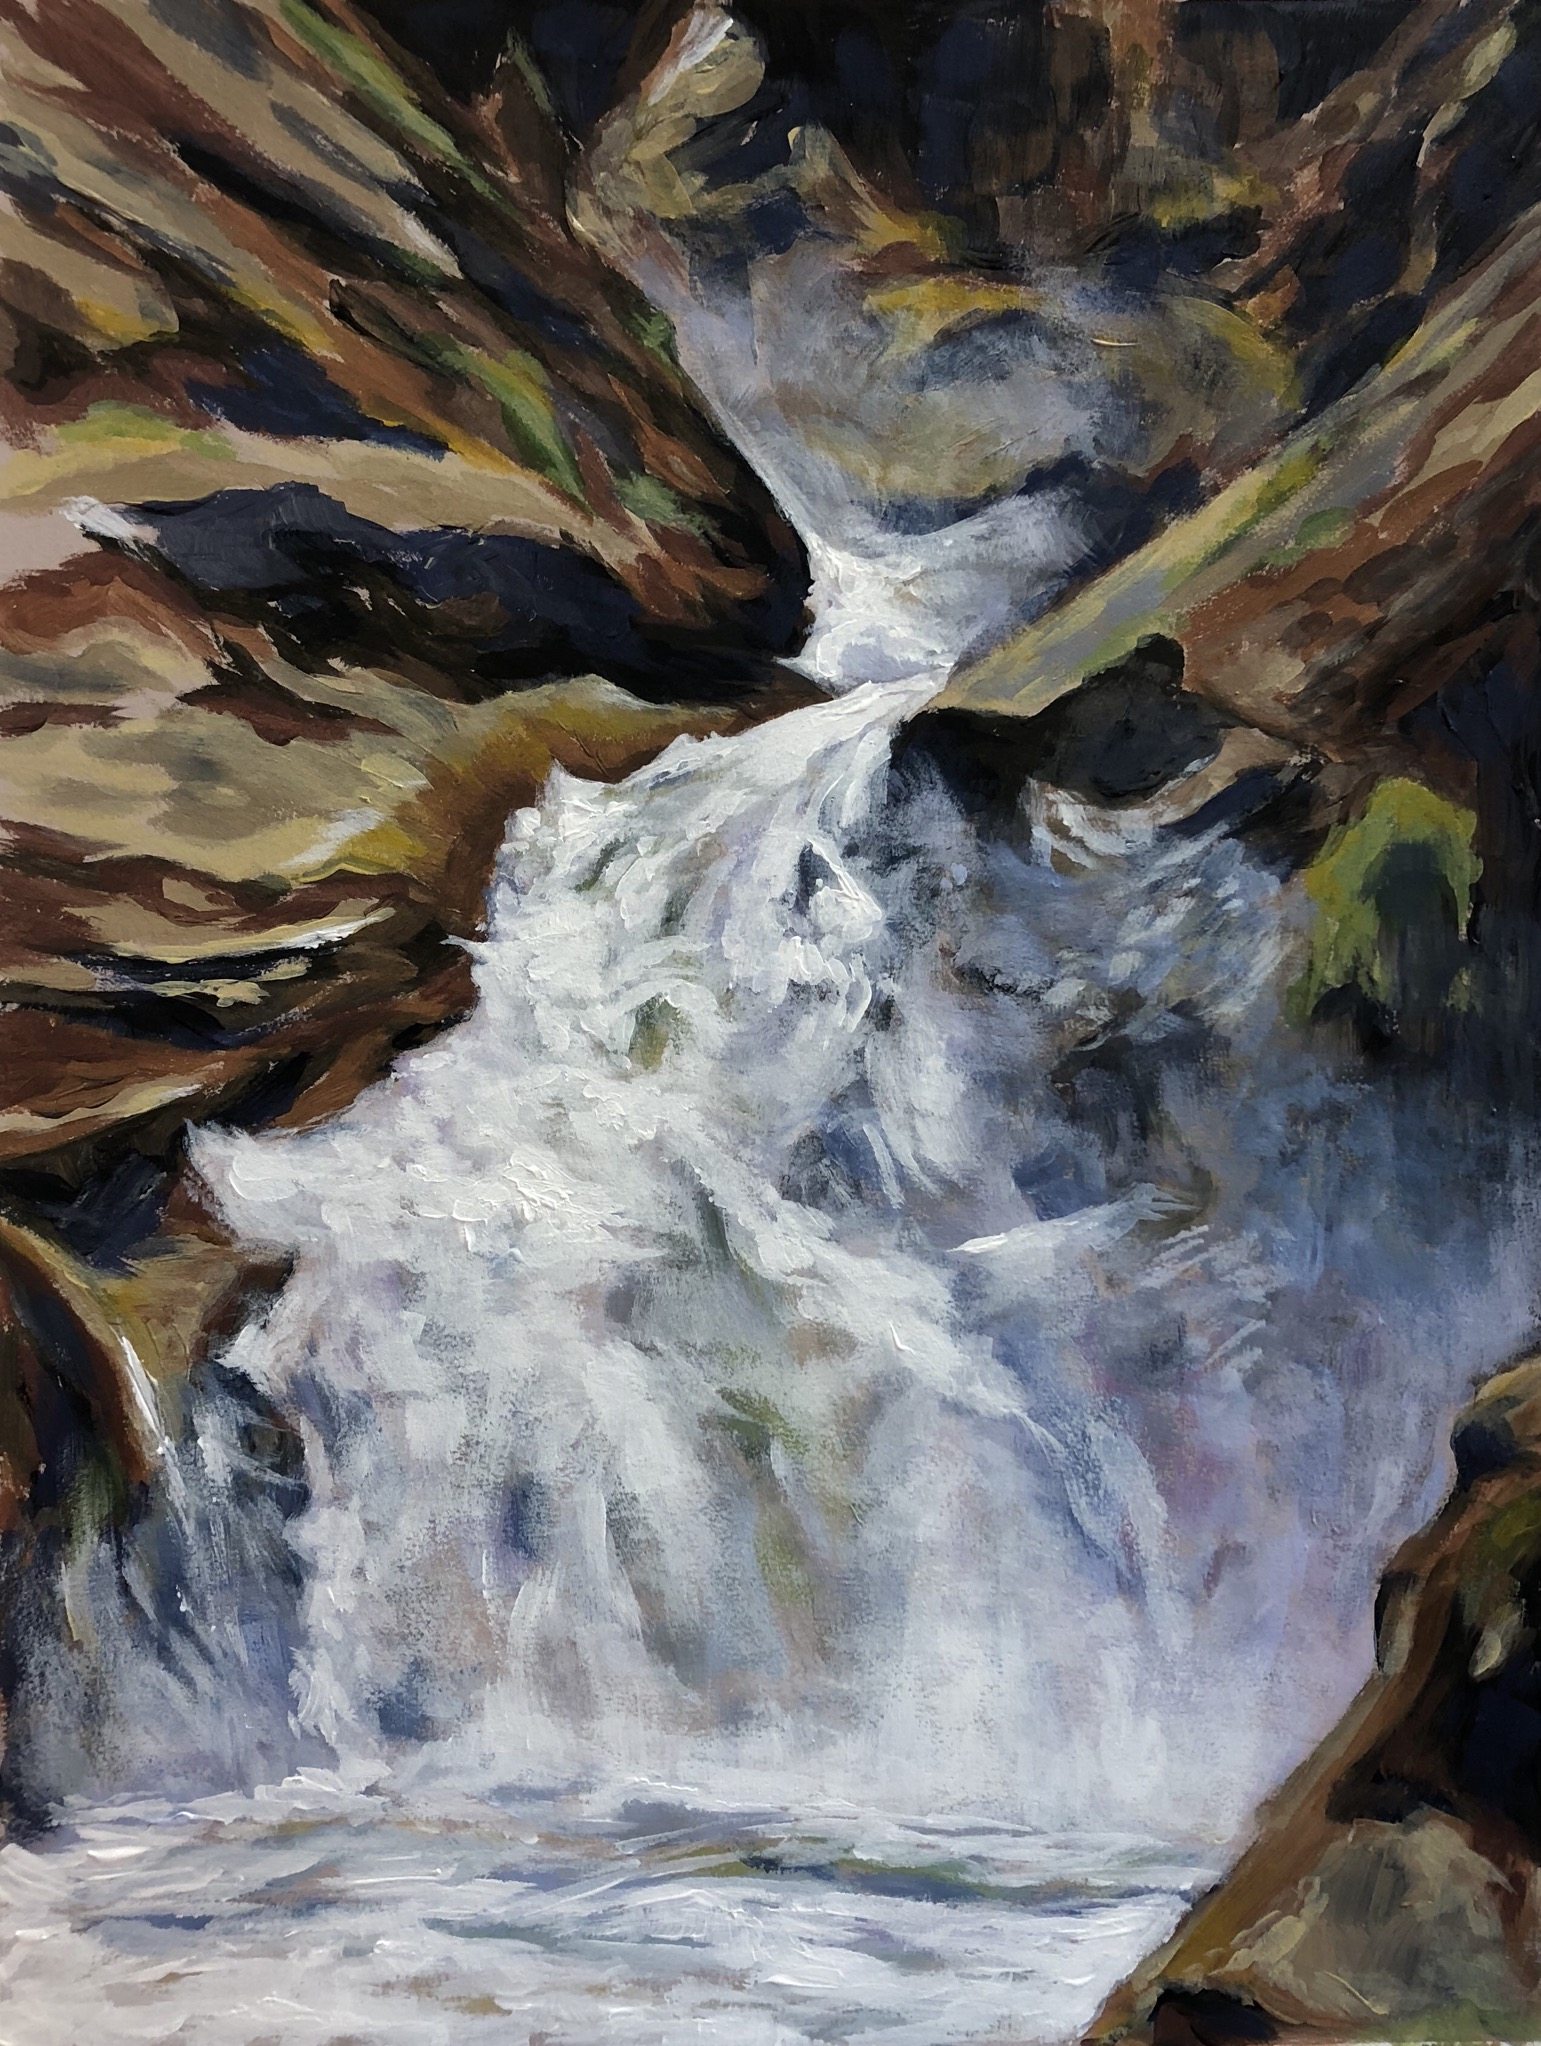 Roaring River Falls, King's Canyon National Park - Acrylic on Colorfix Paper